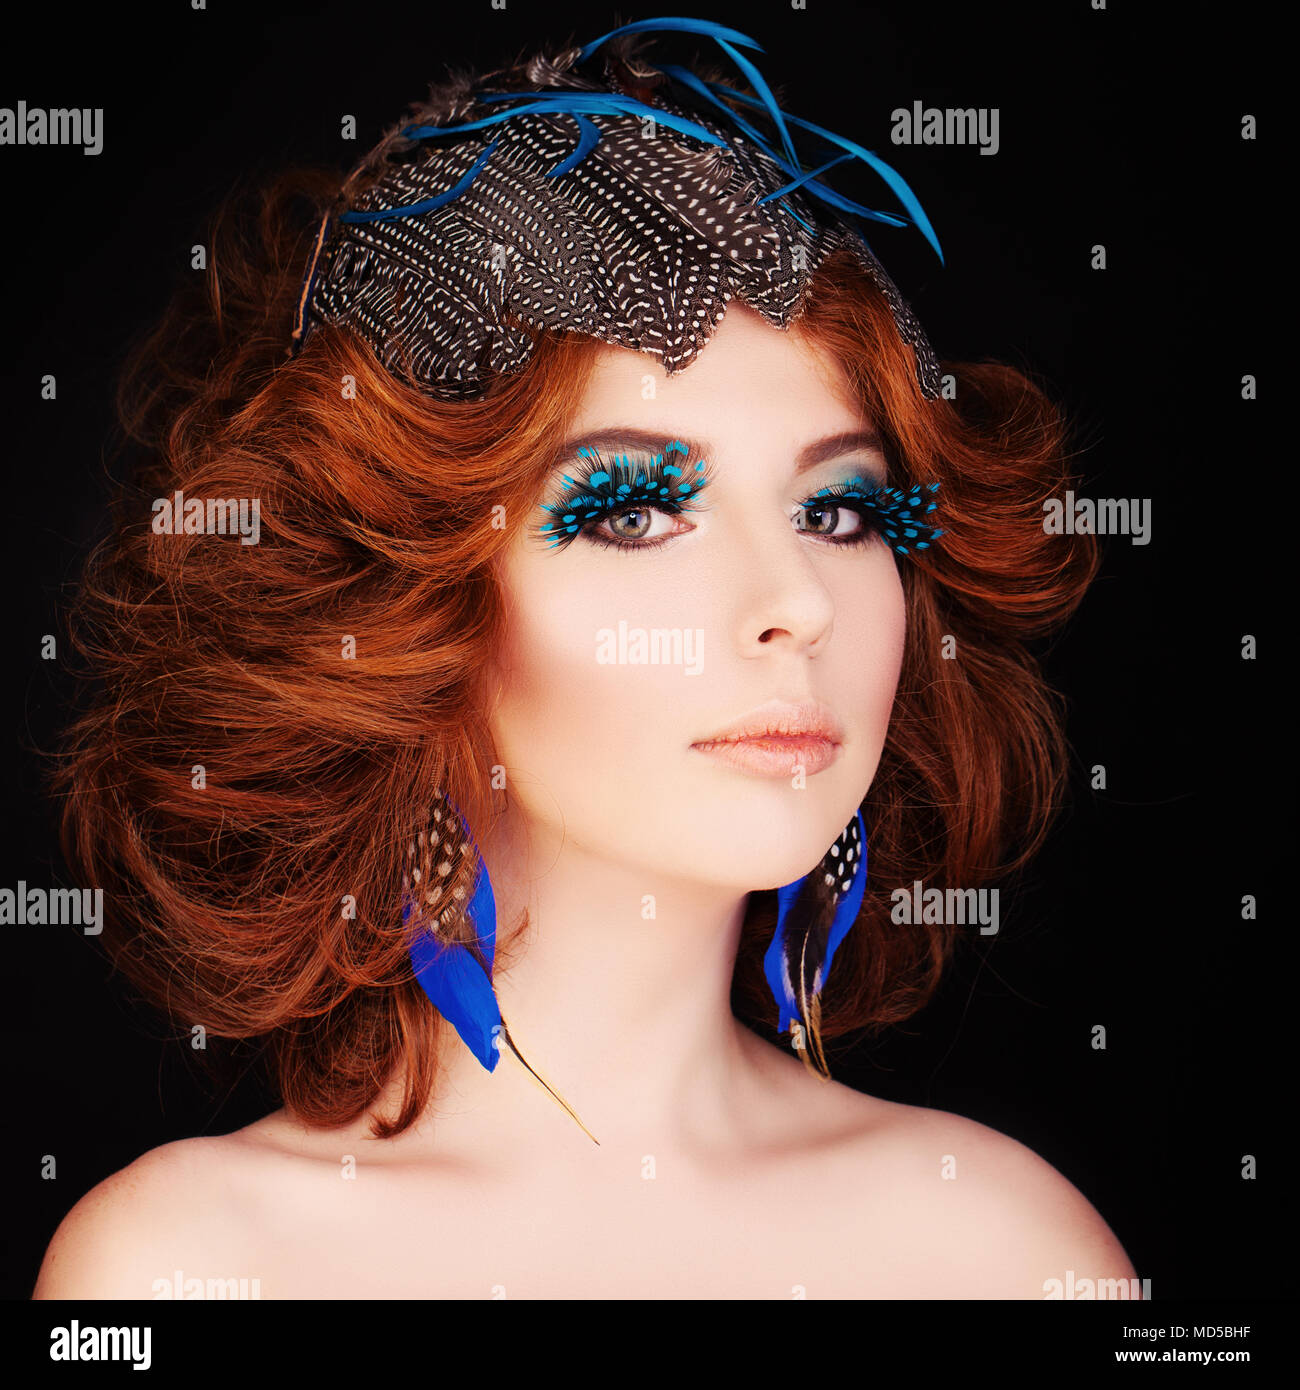 Cute Redhead Woman With Makeup And Red Hair Blue Bird Face Stock